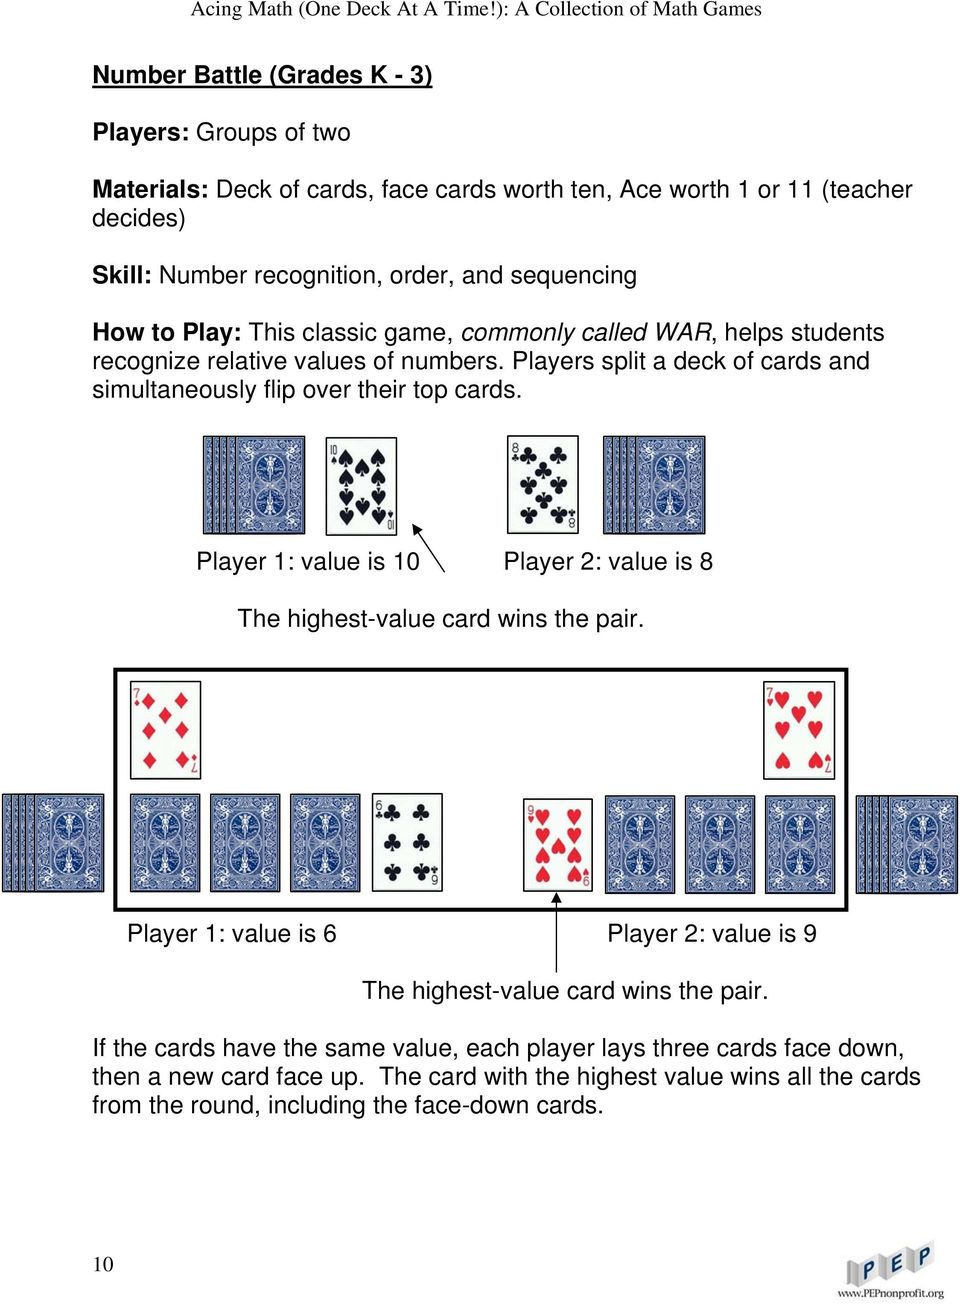 Players split a deck of cards and simultaneously flip over their top cards. Player 1: value is 10 Player 2: value is 8 The highest-value card wins the pair.